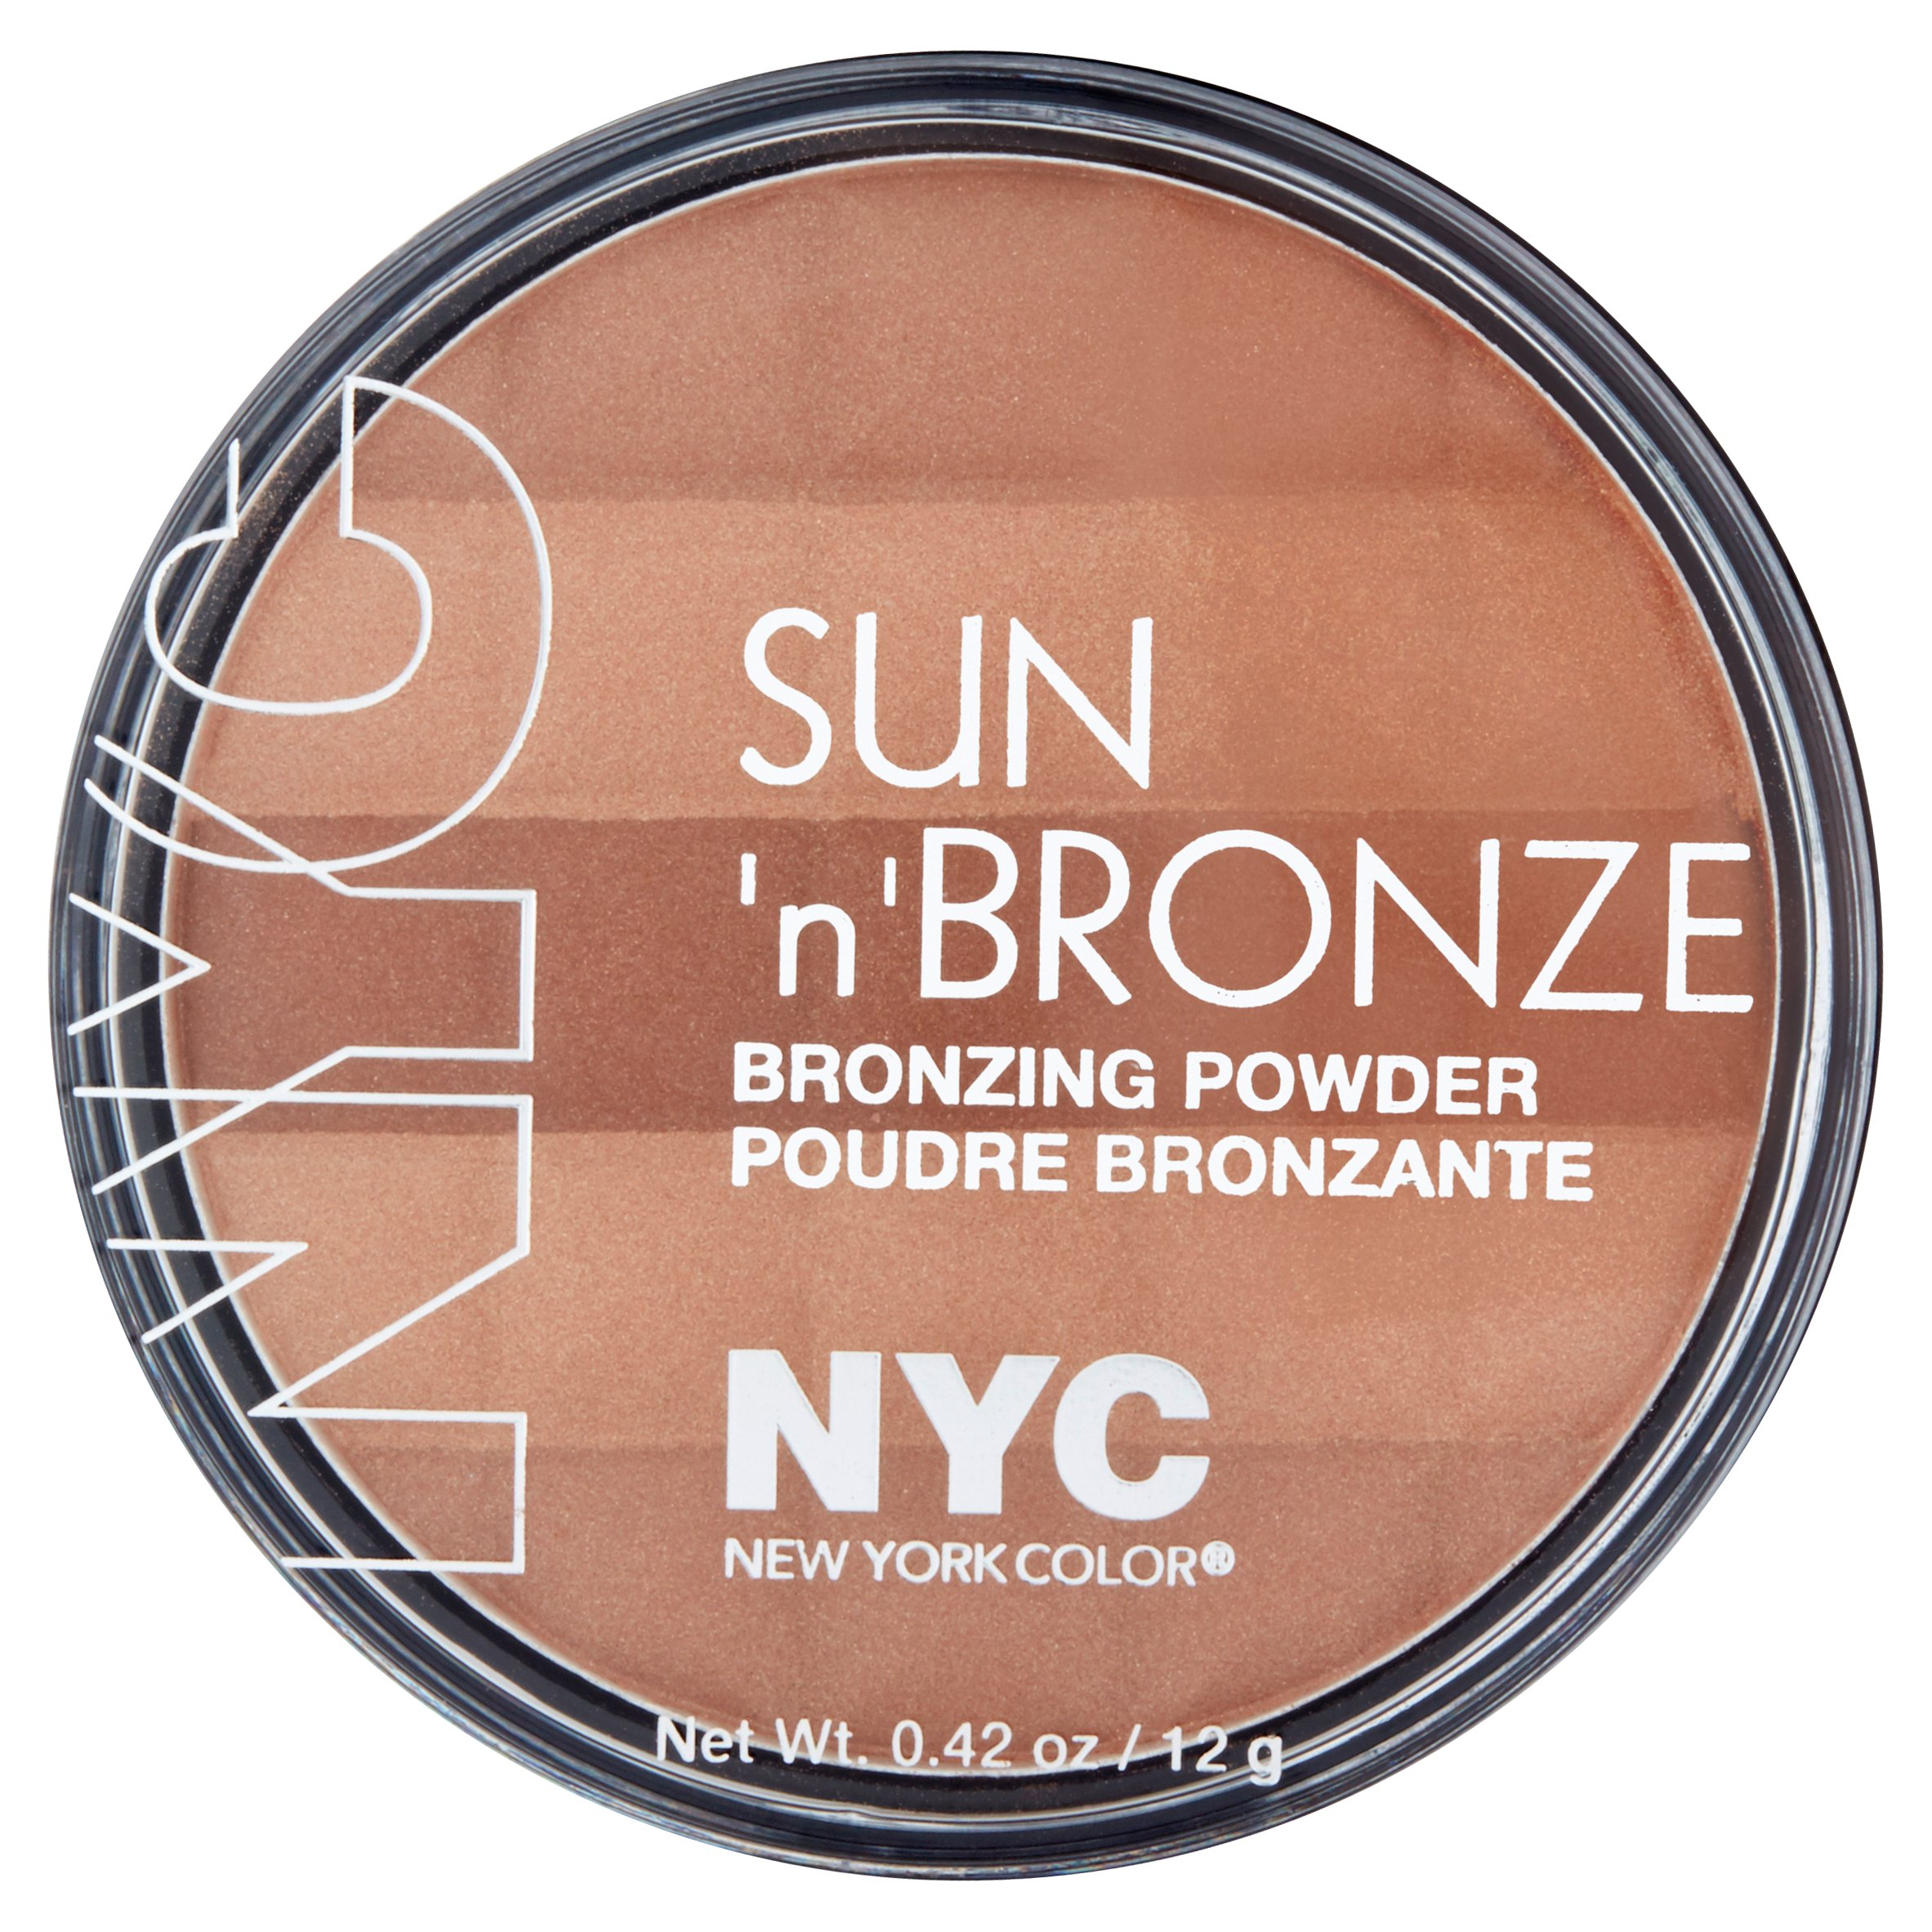 New York Color Sun 'n' Bronze 707 Fire Island Tan Bronzing Powder, 0.42 oz